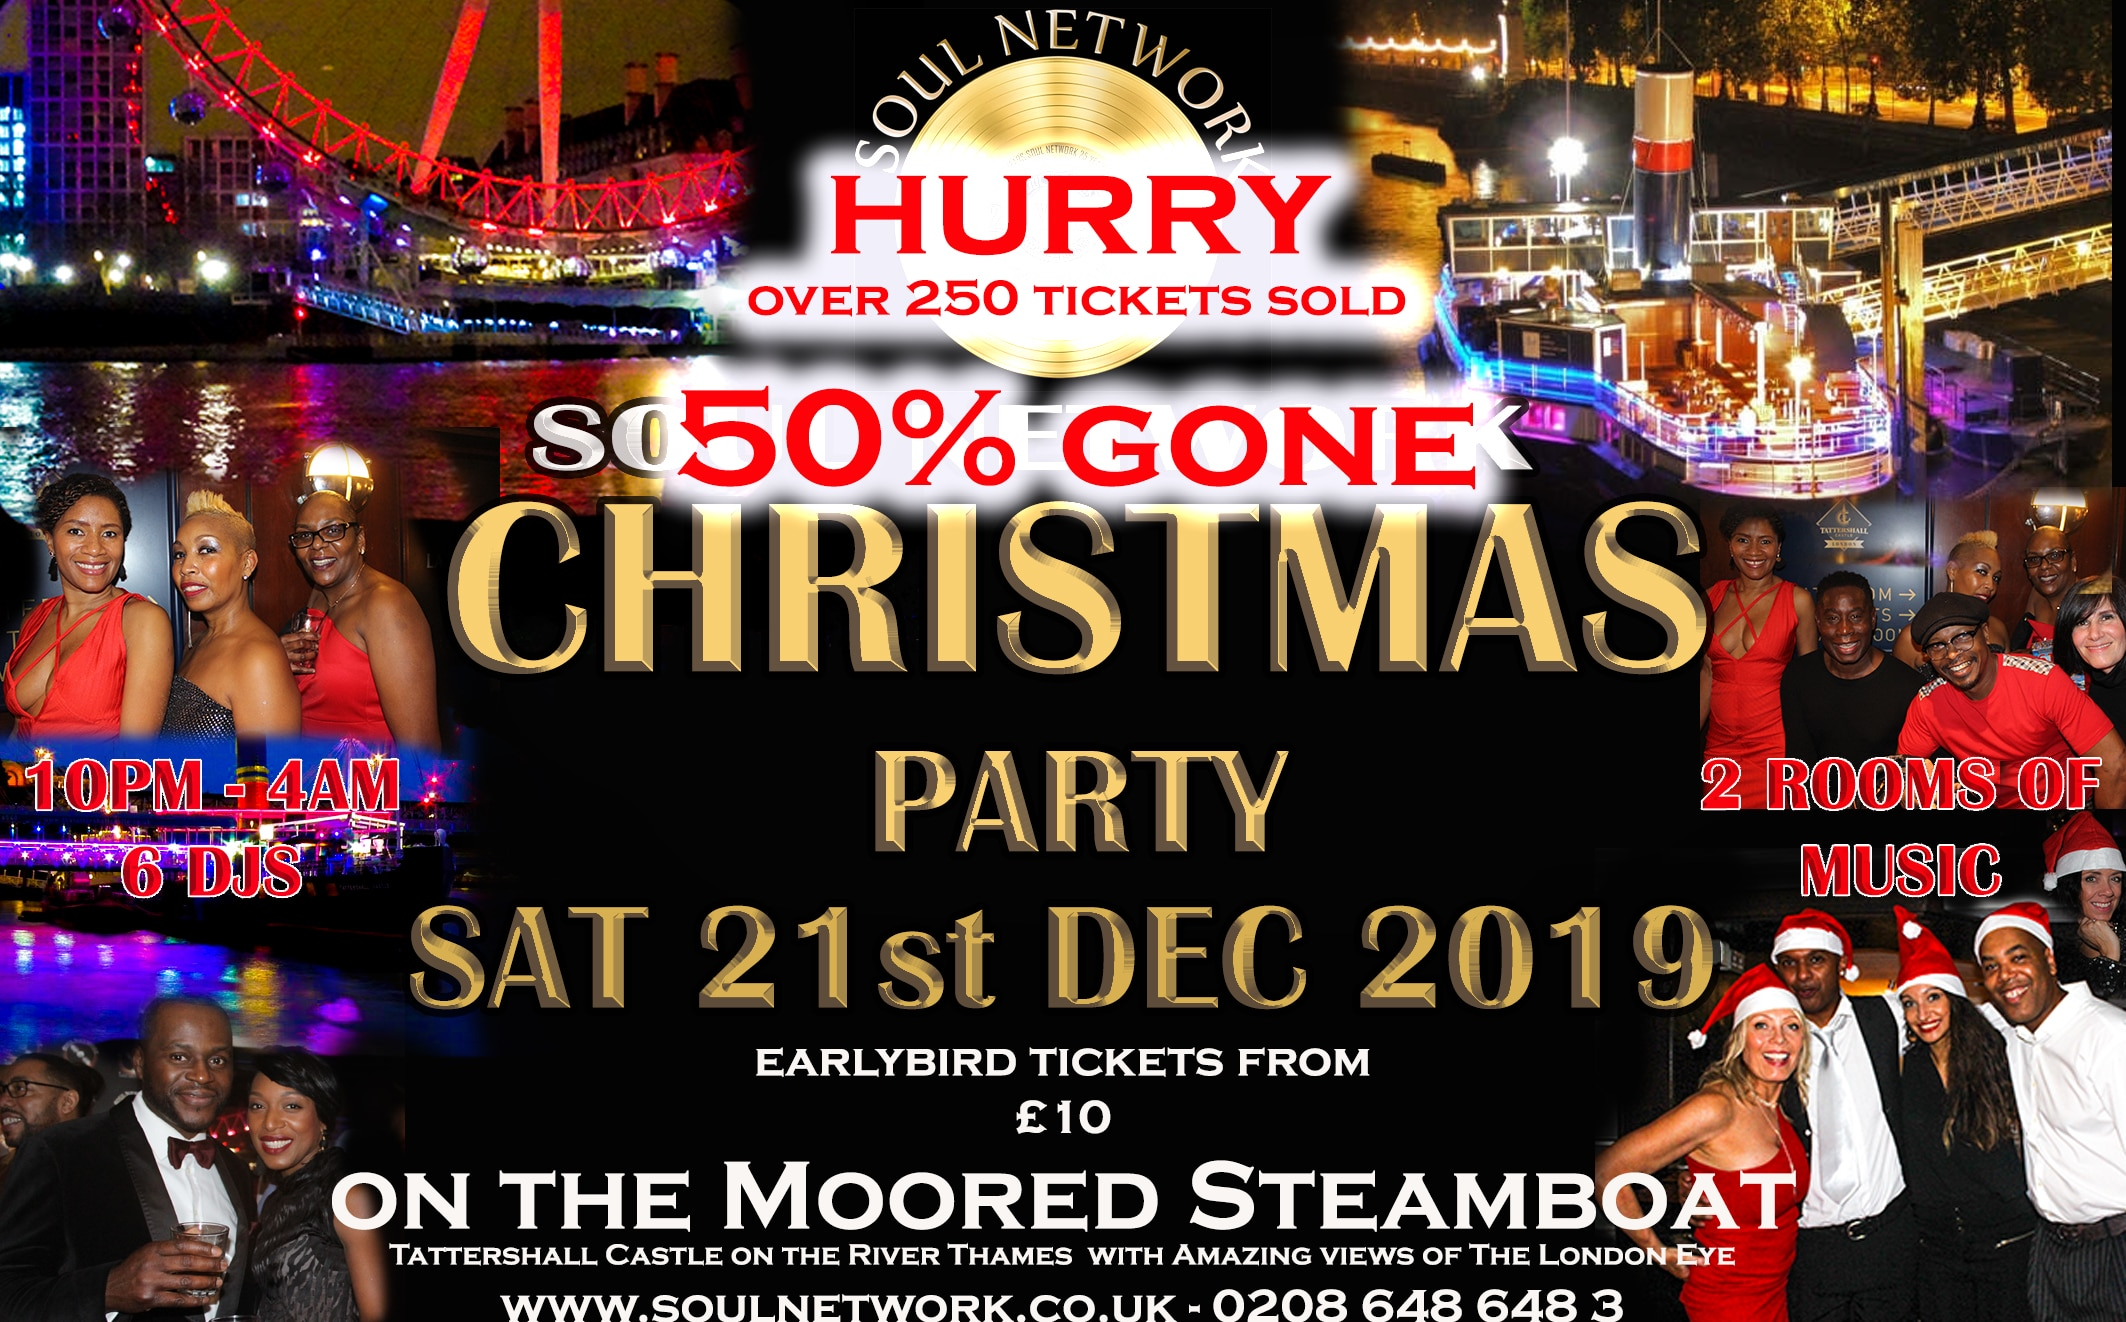 Christmas Party Flyer Tattershall 50% gone